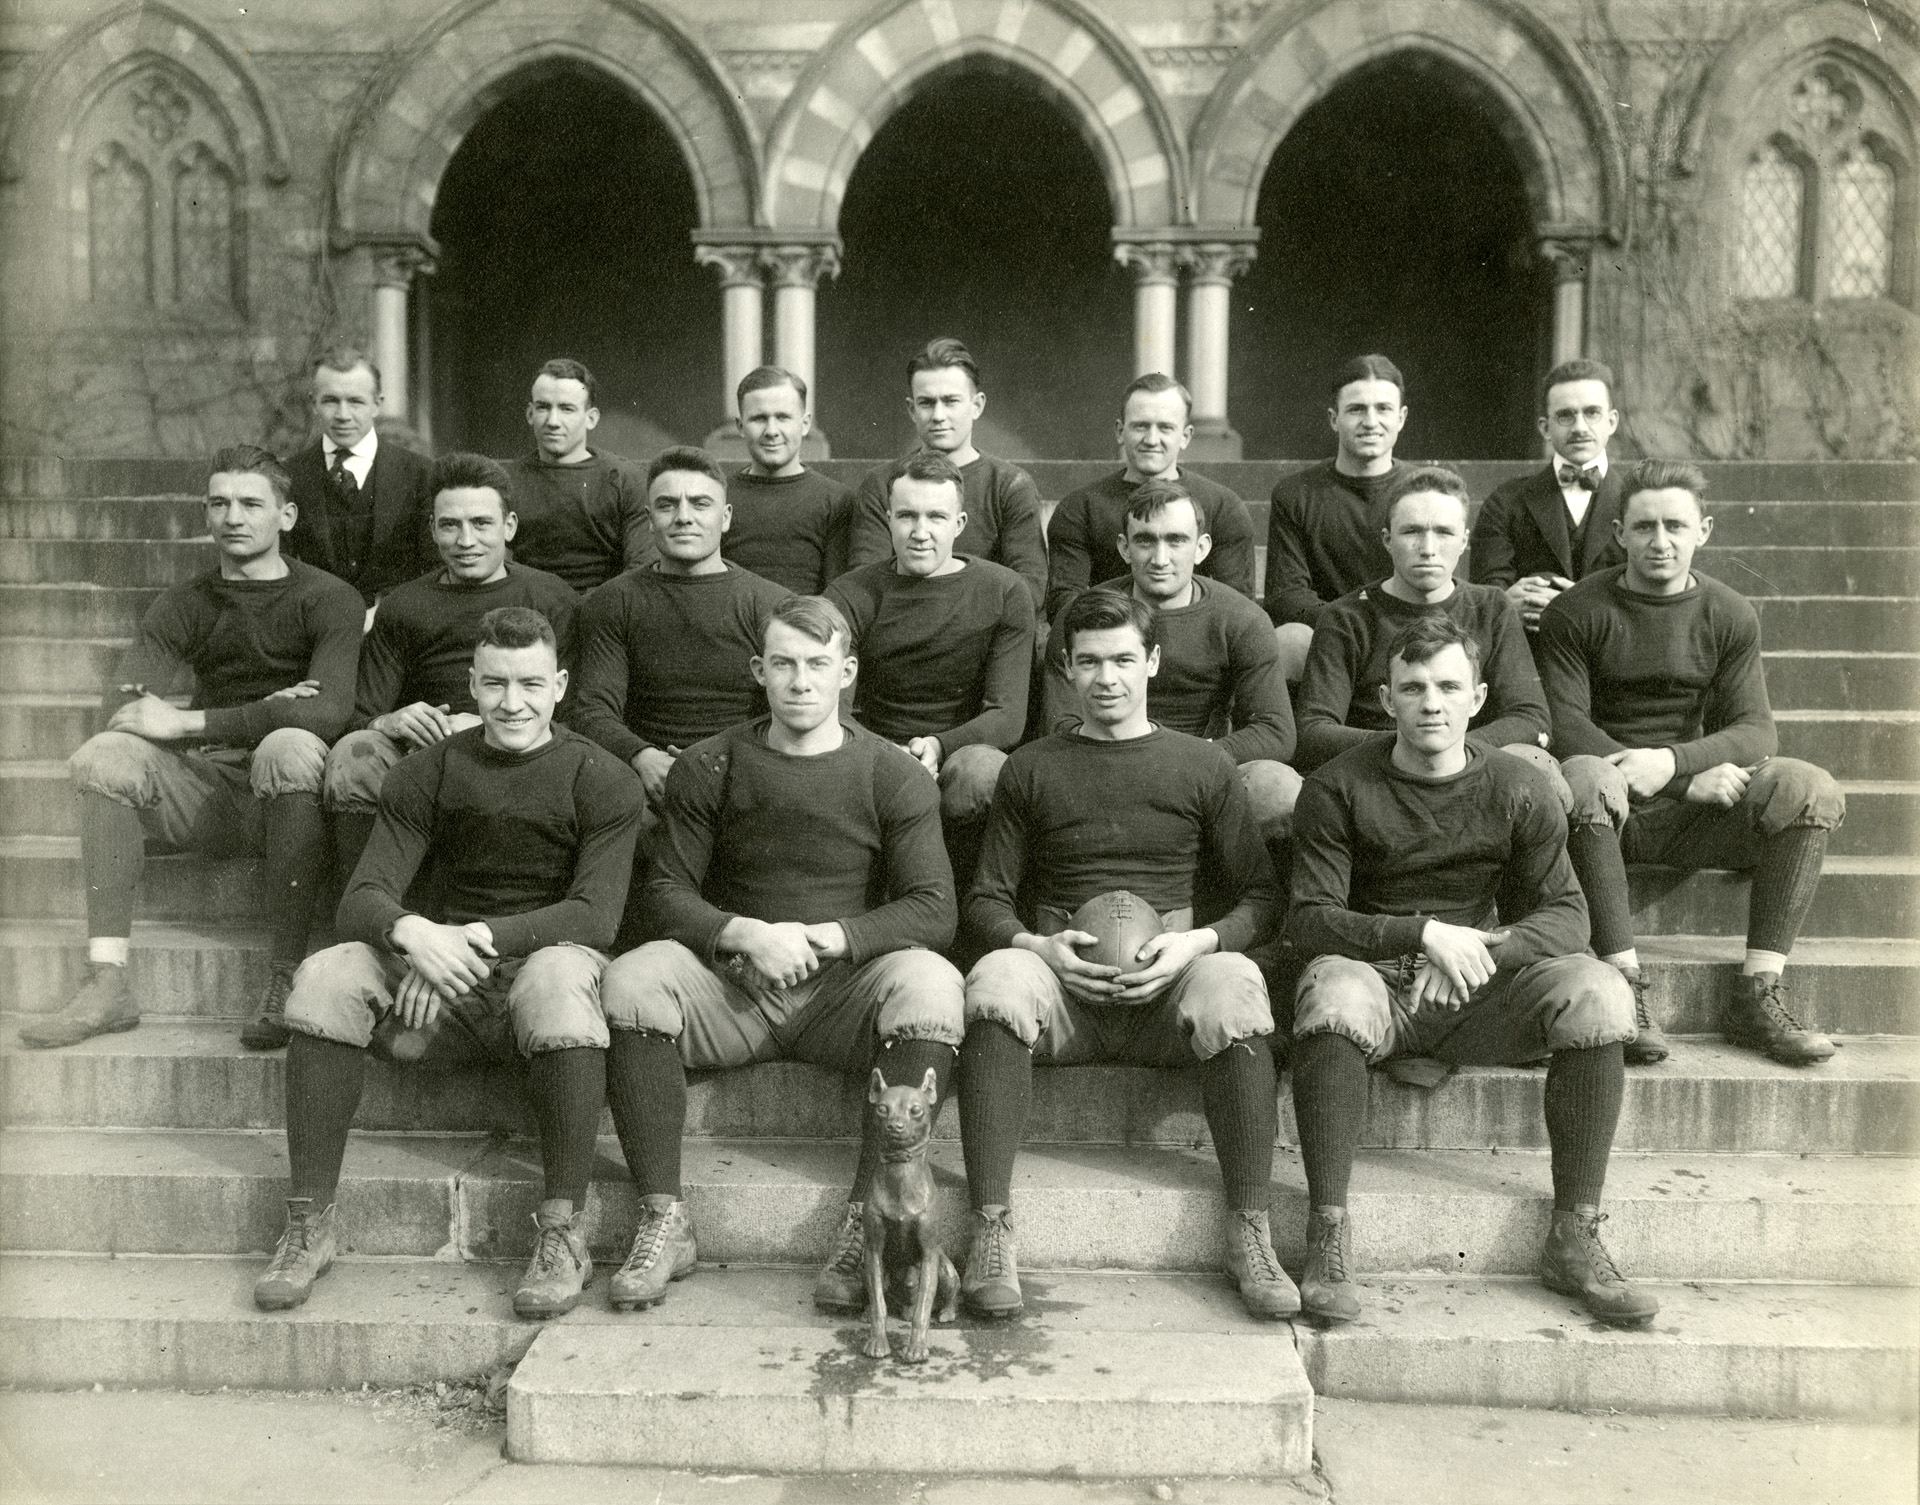 Blk/white photo of Football players in group in front of Chapel Hall